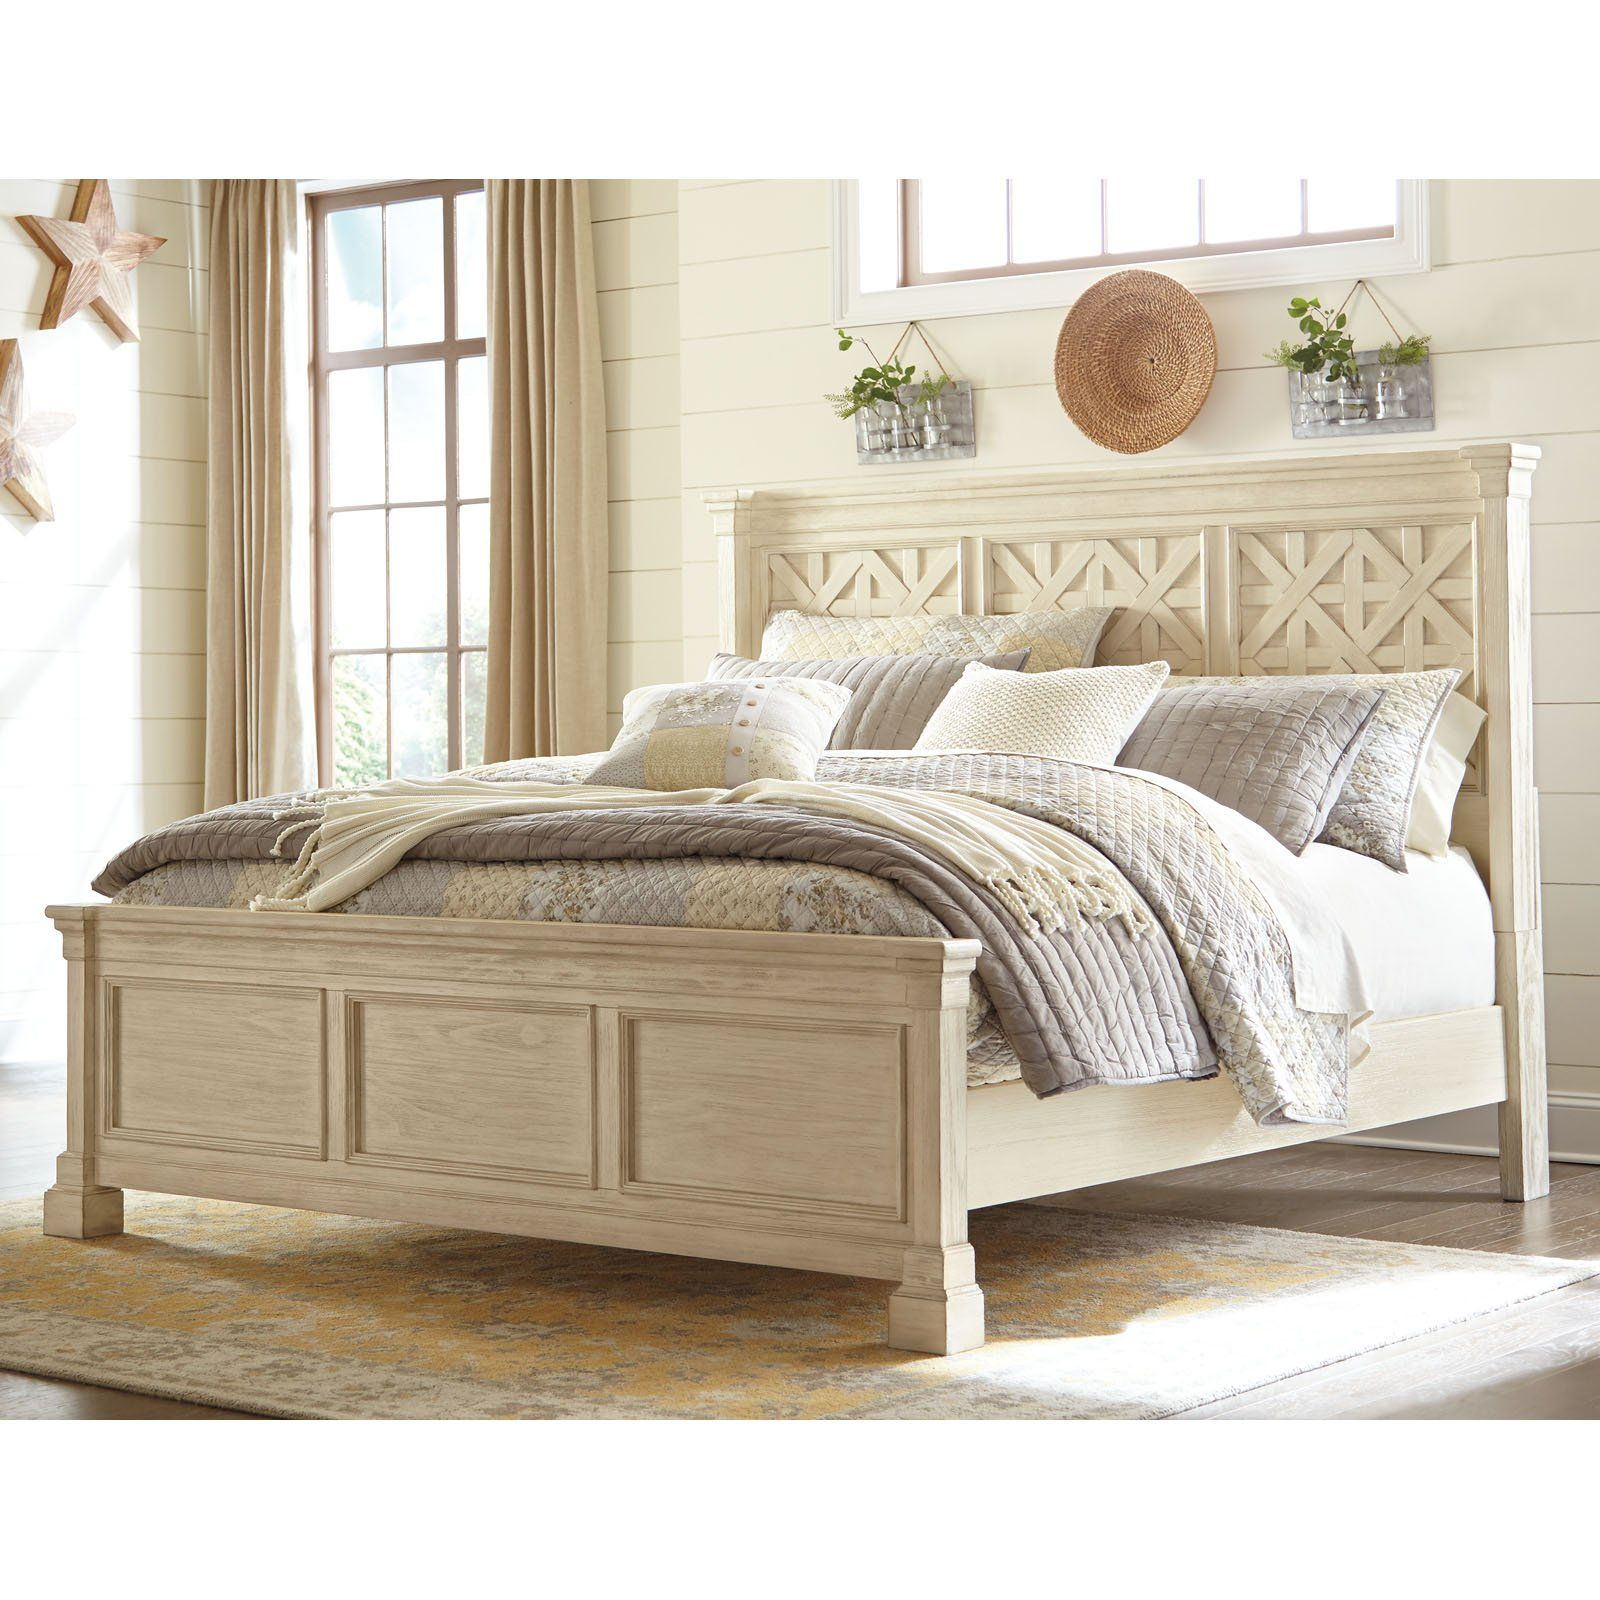 Best Signature Design By Ashley Bolanburg Panel Bed Bedroom 640 x 480